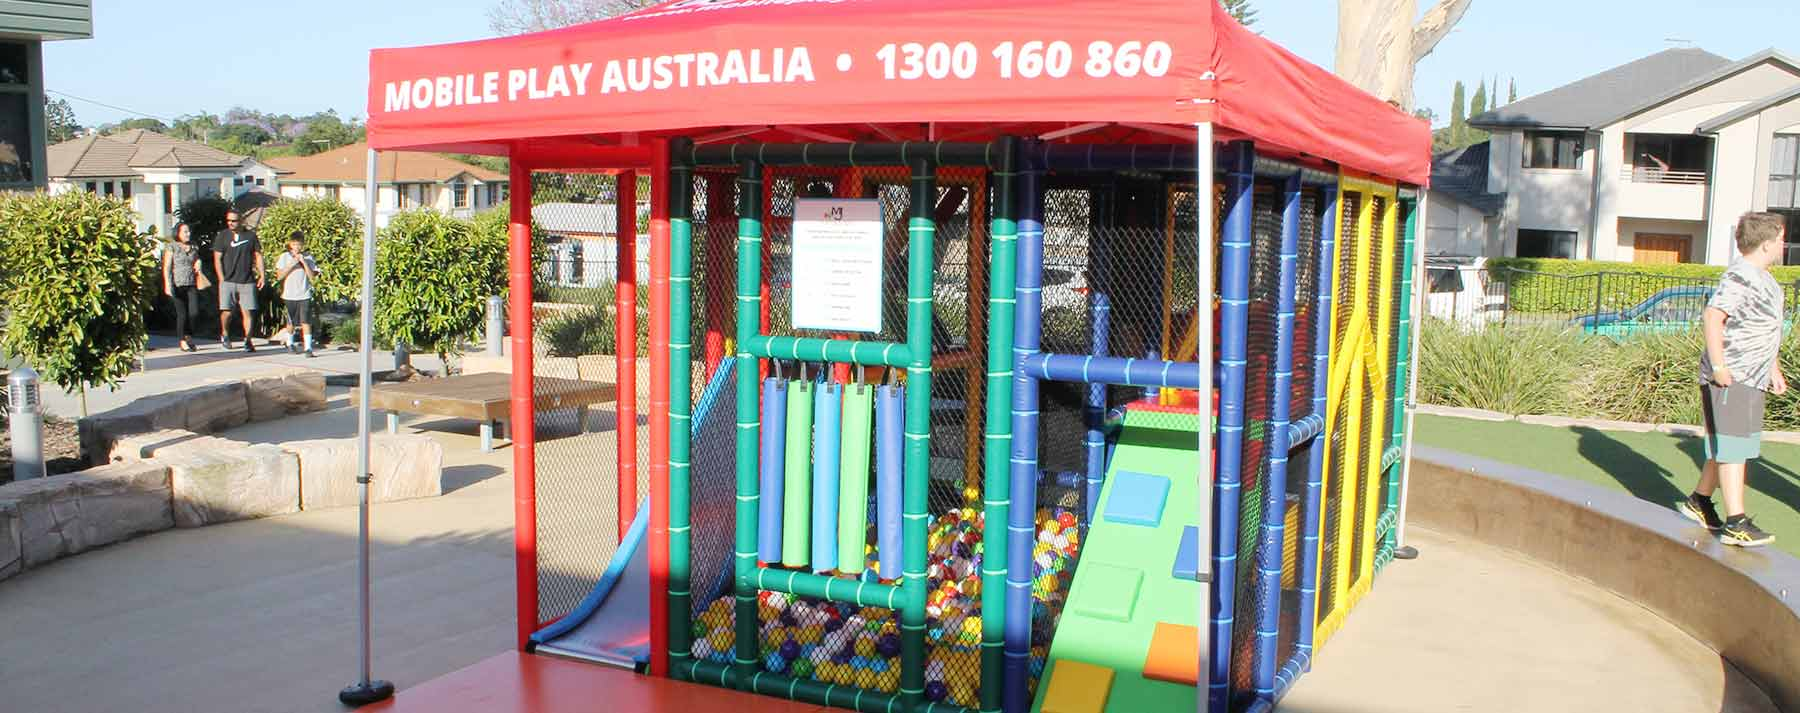 Mobile Playground at Expo